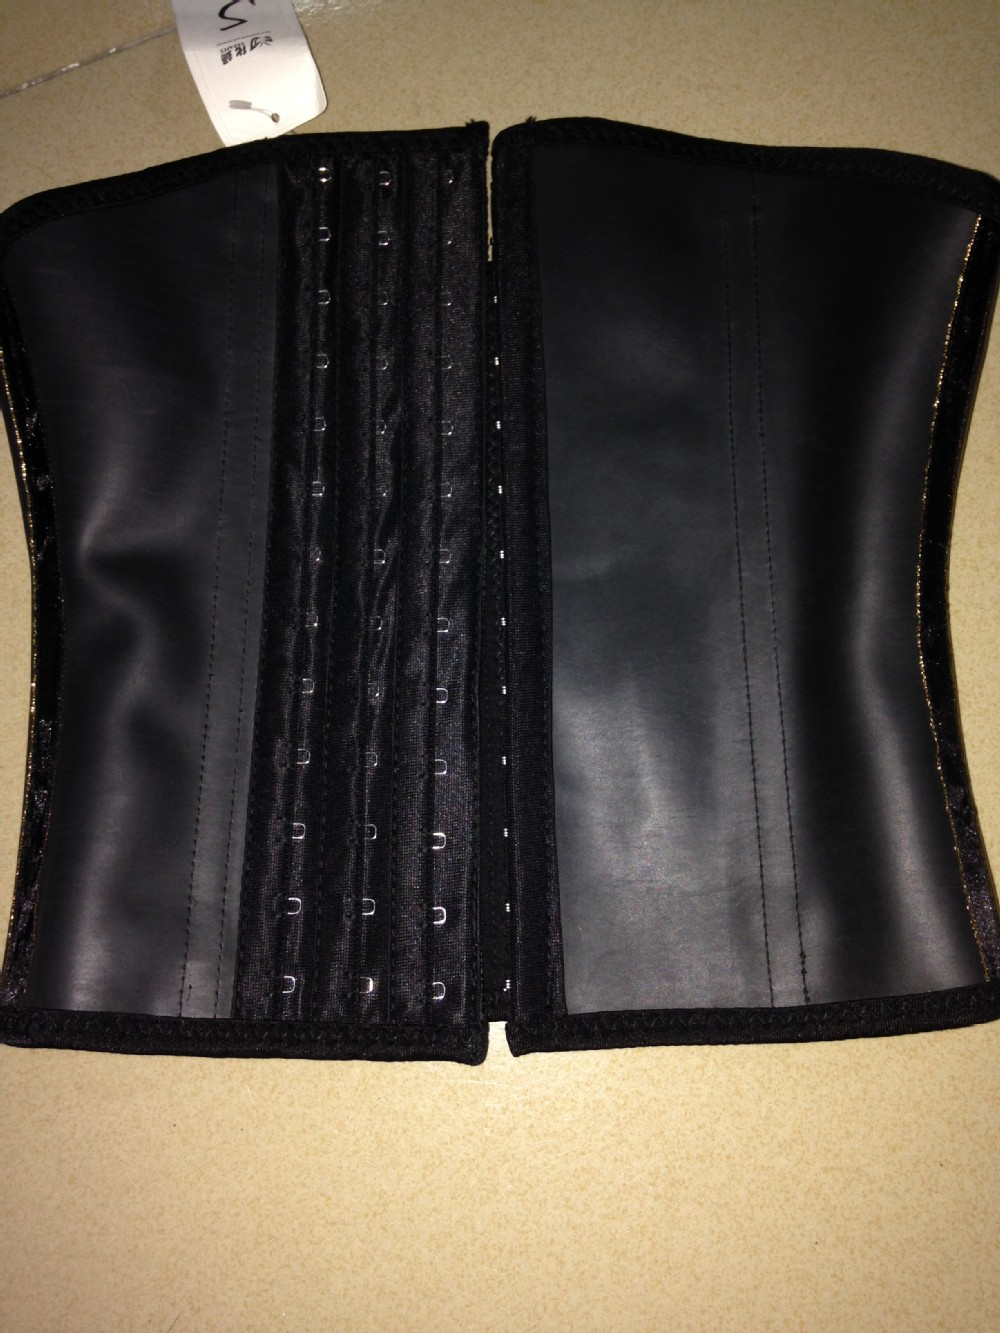 new arrival adjustable waist training corset 4xl body shaper